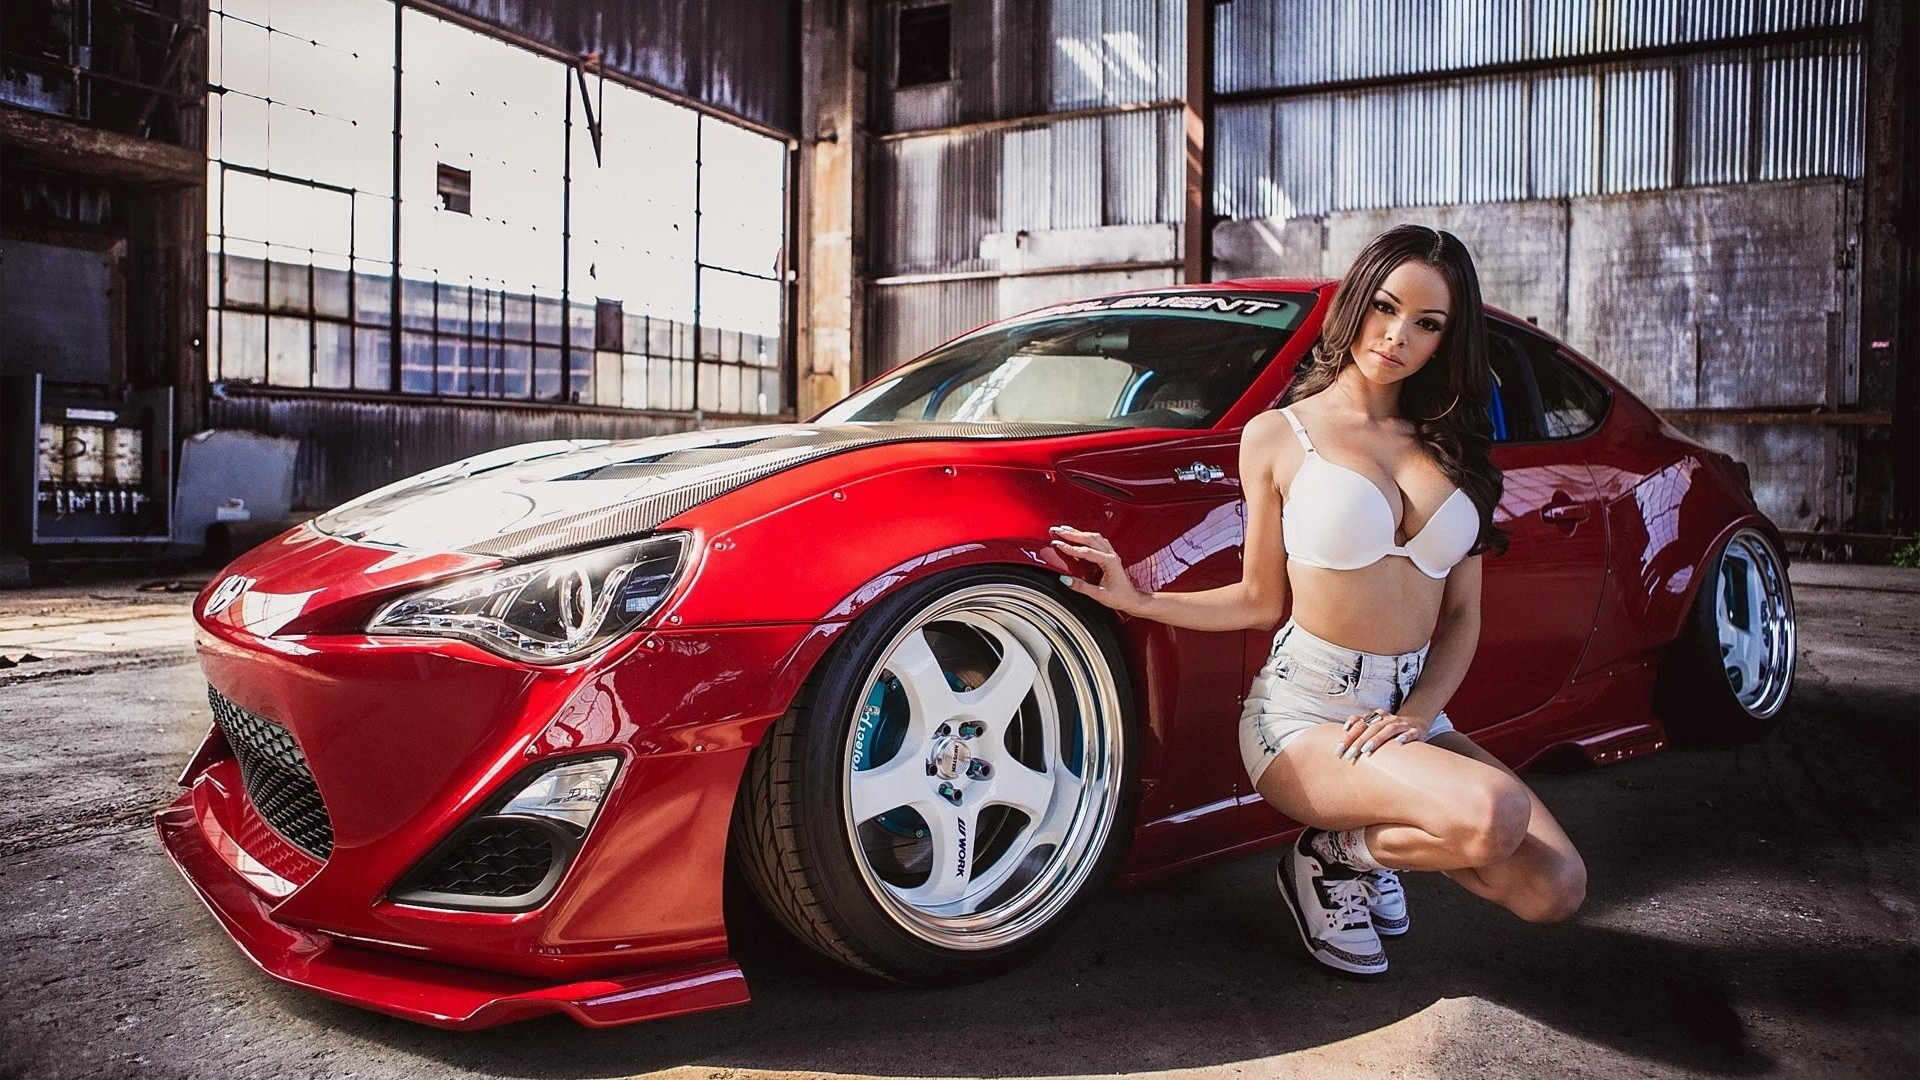 1366x768 hd car wallpapers free download